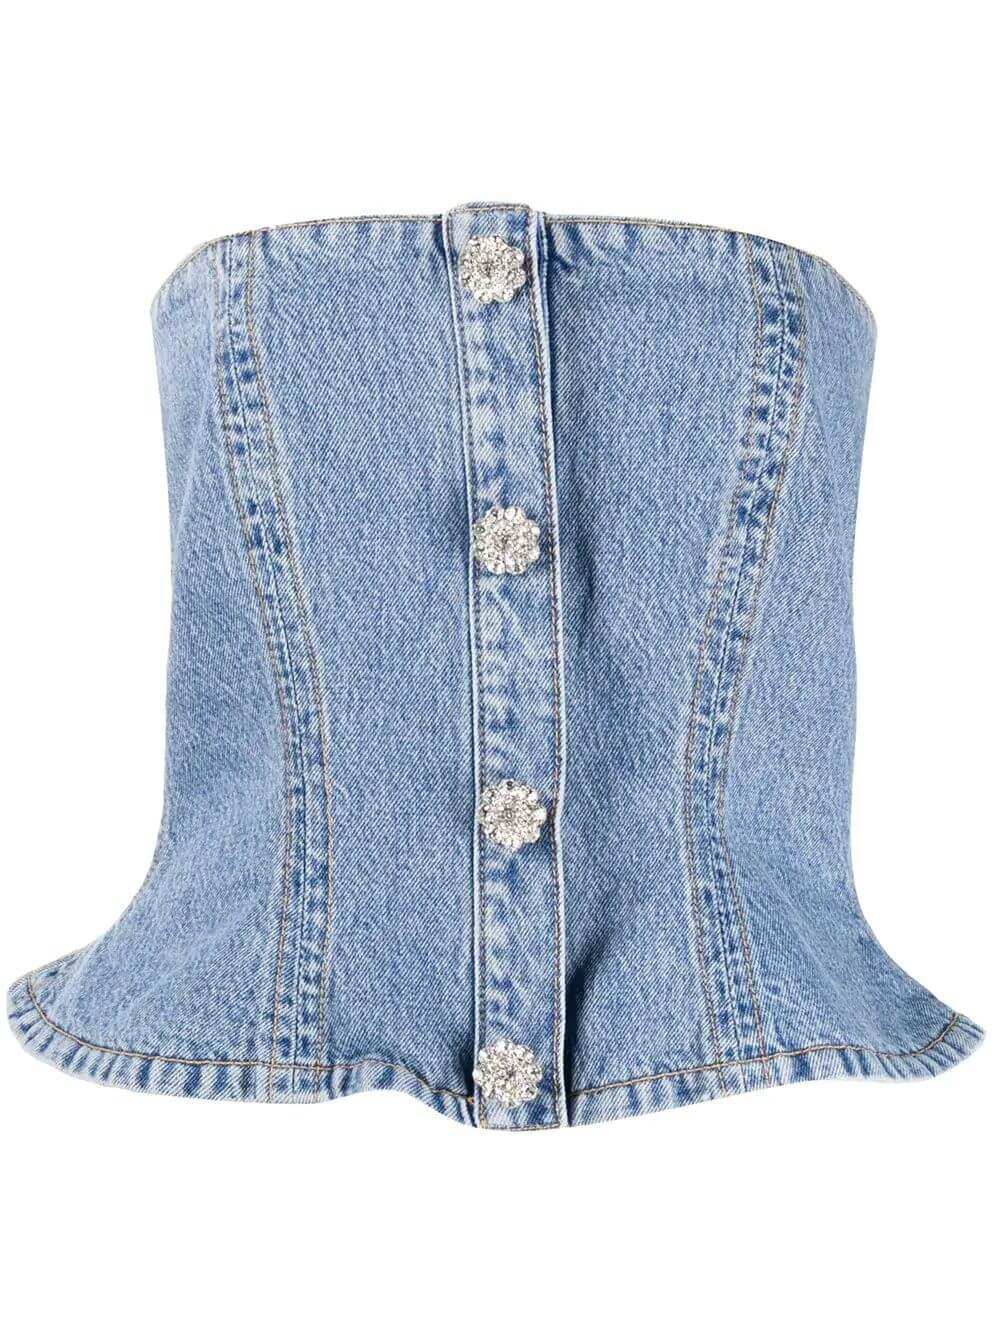 Denim Bandeau Top With Crystal Buttons Item # F4478